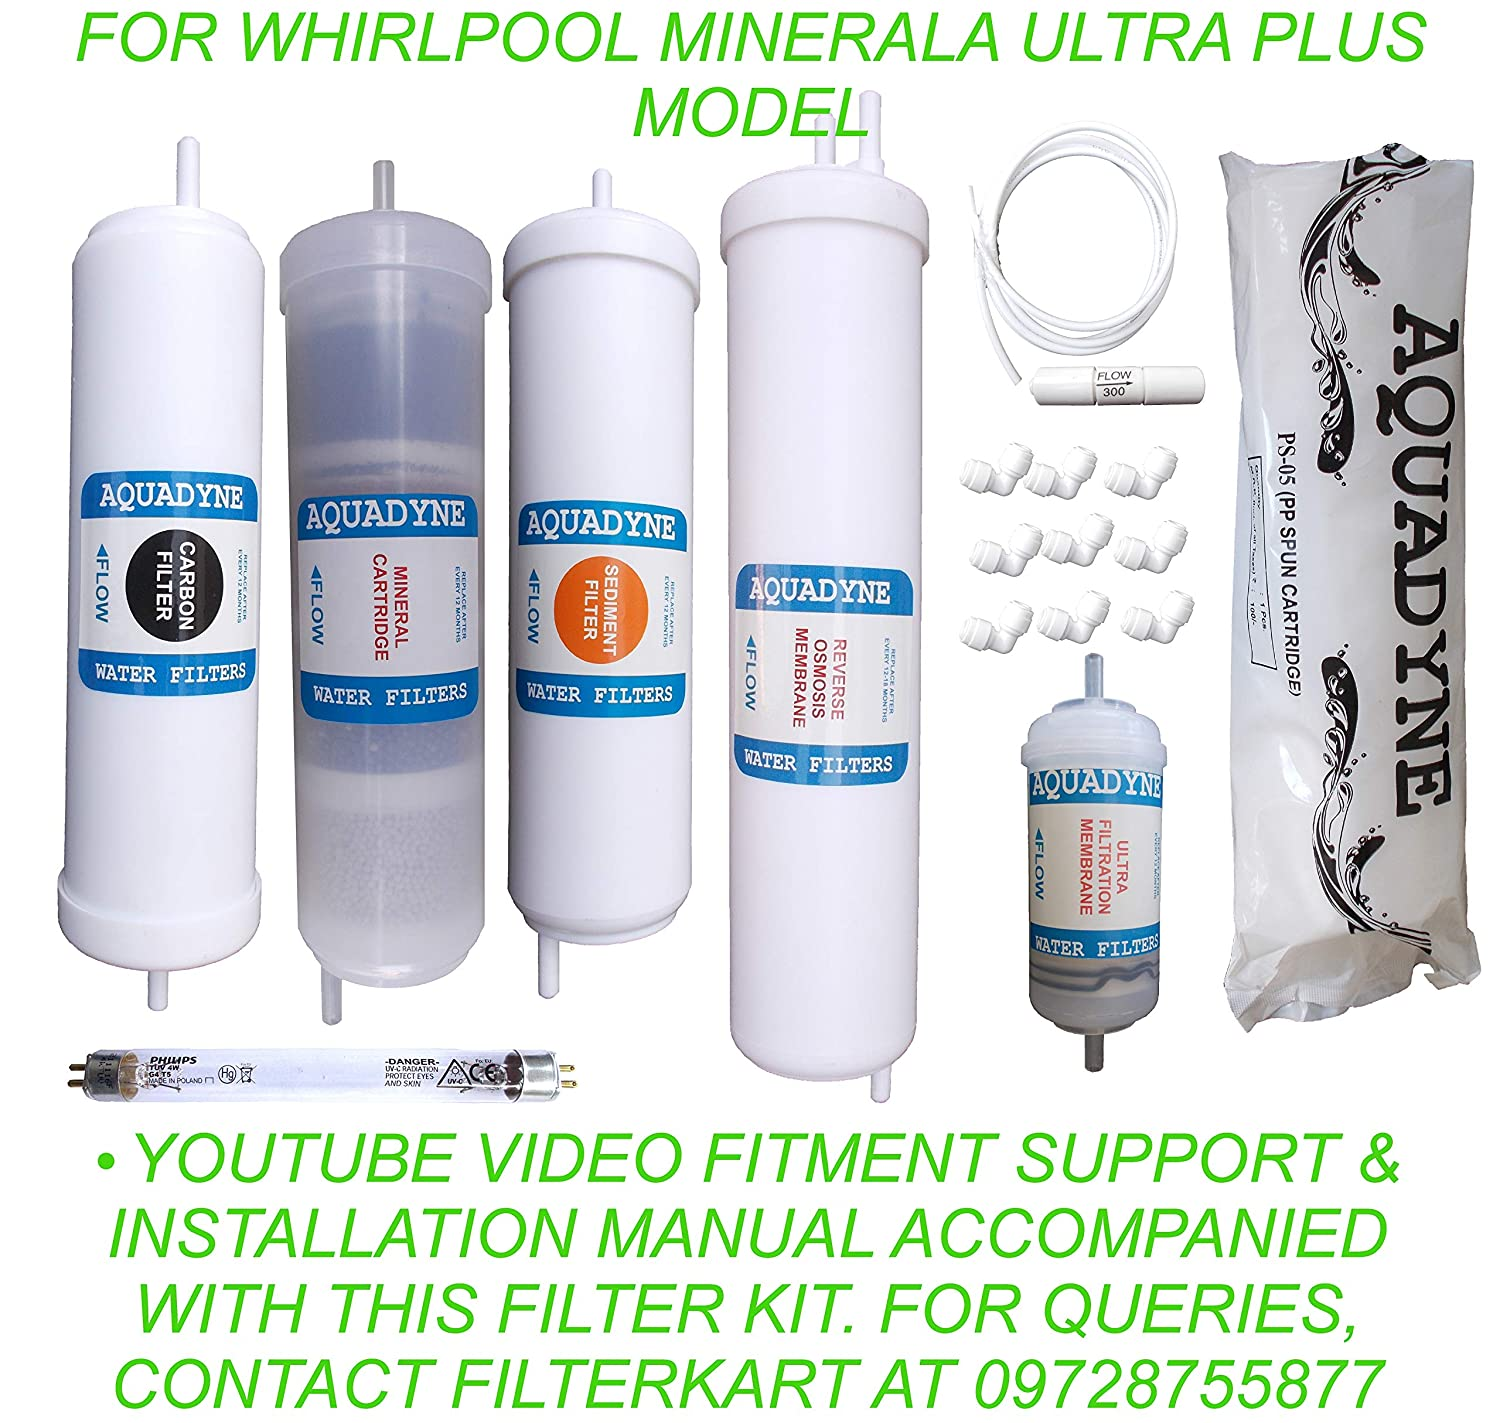 af354355c4 Aquadyne Filter Service Kit for Whirlpool Minerala Ultra Plus RO + UV + UF Water  Purifier with Installation Guide and Video Fitment Support, 1- Piece, White